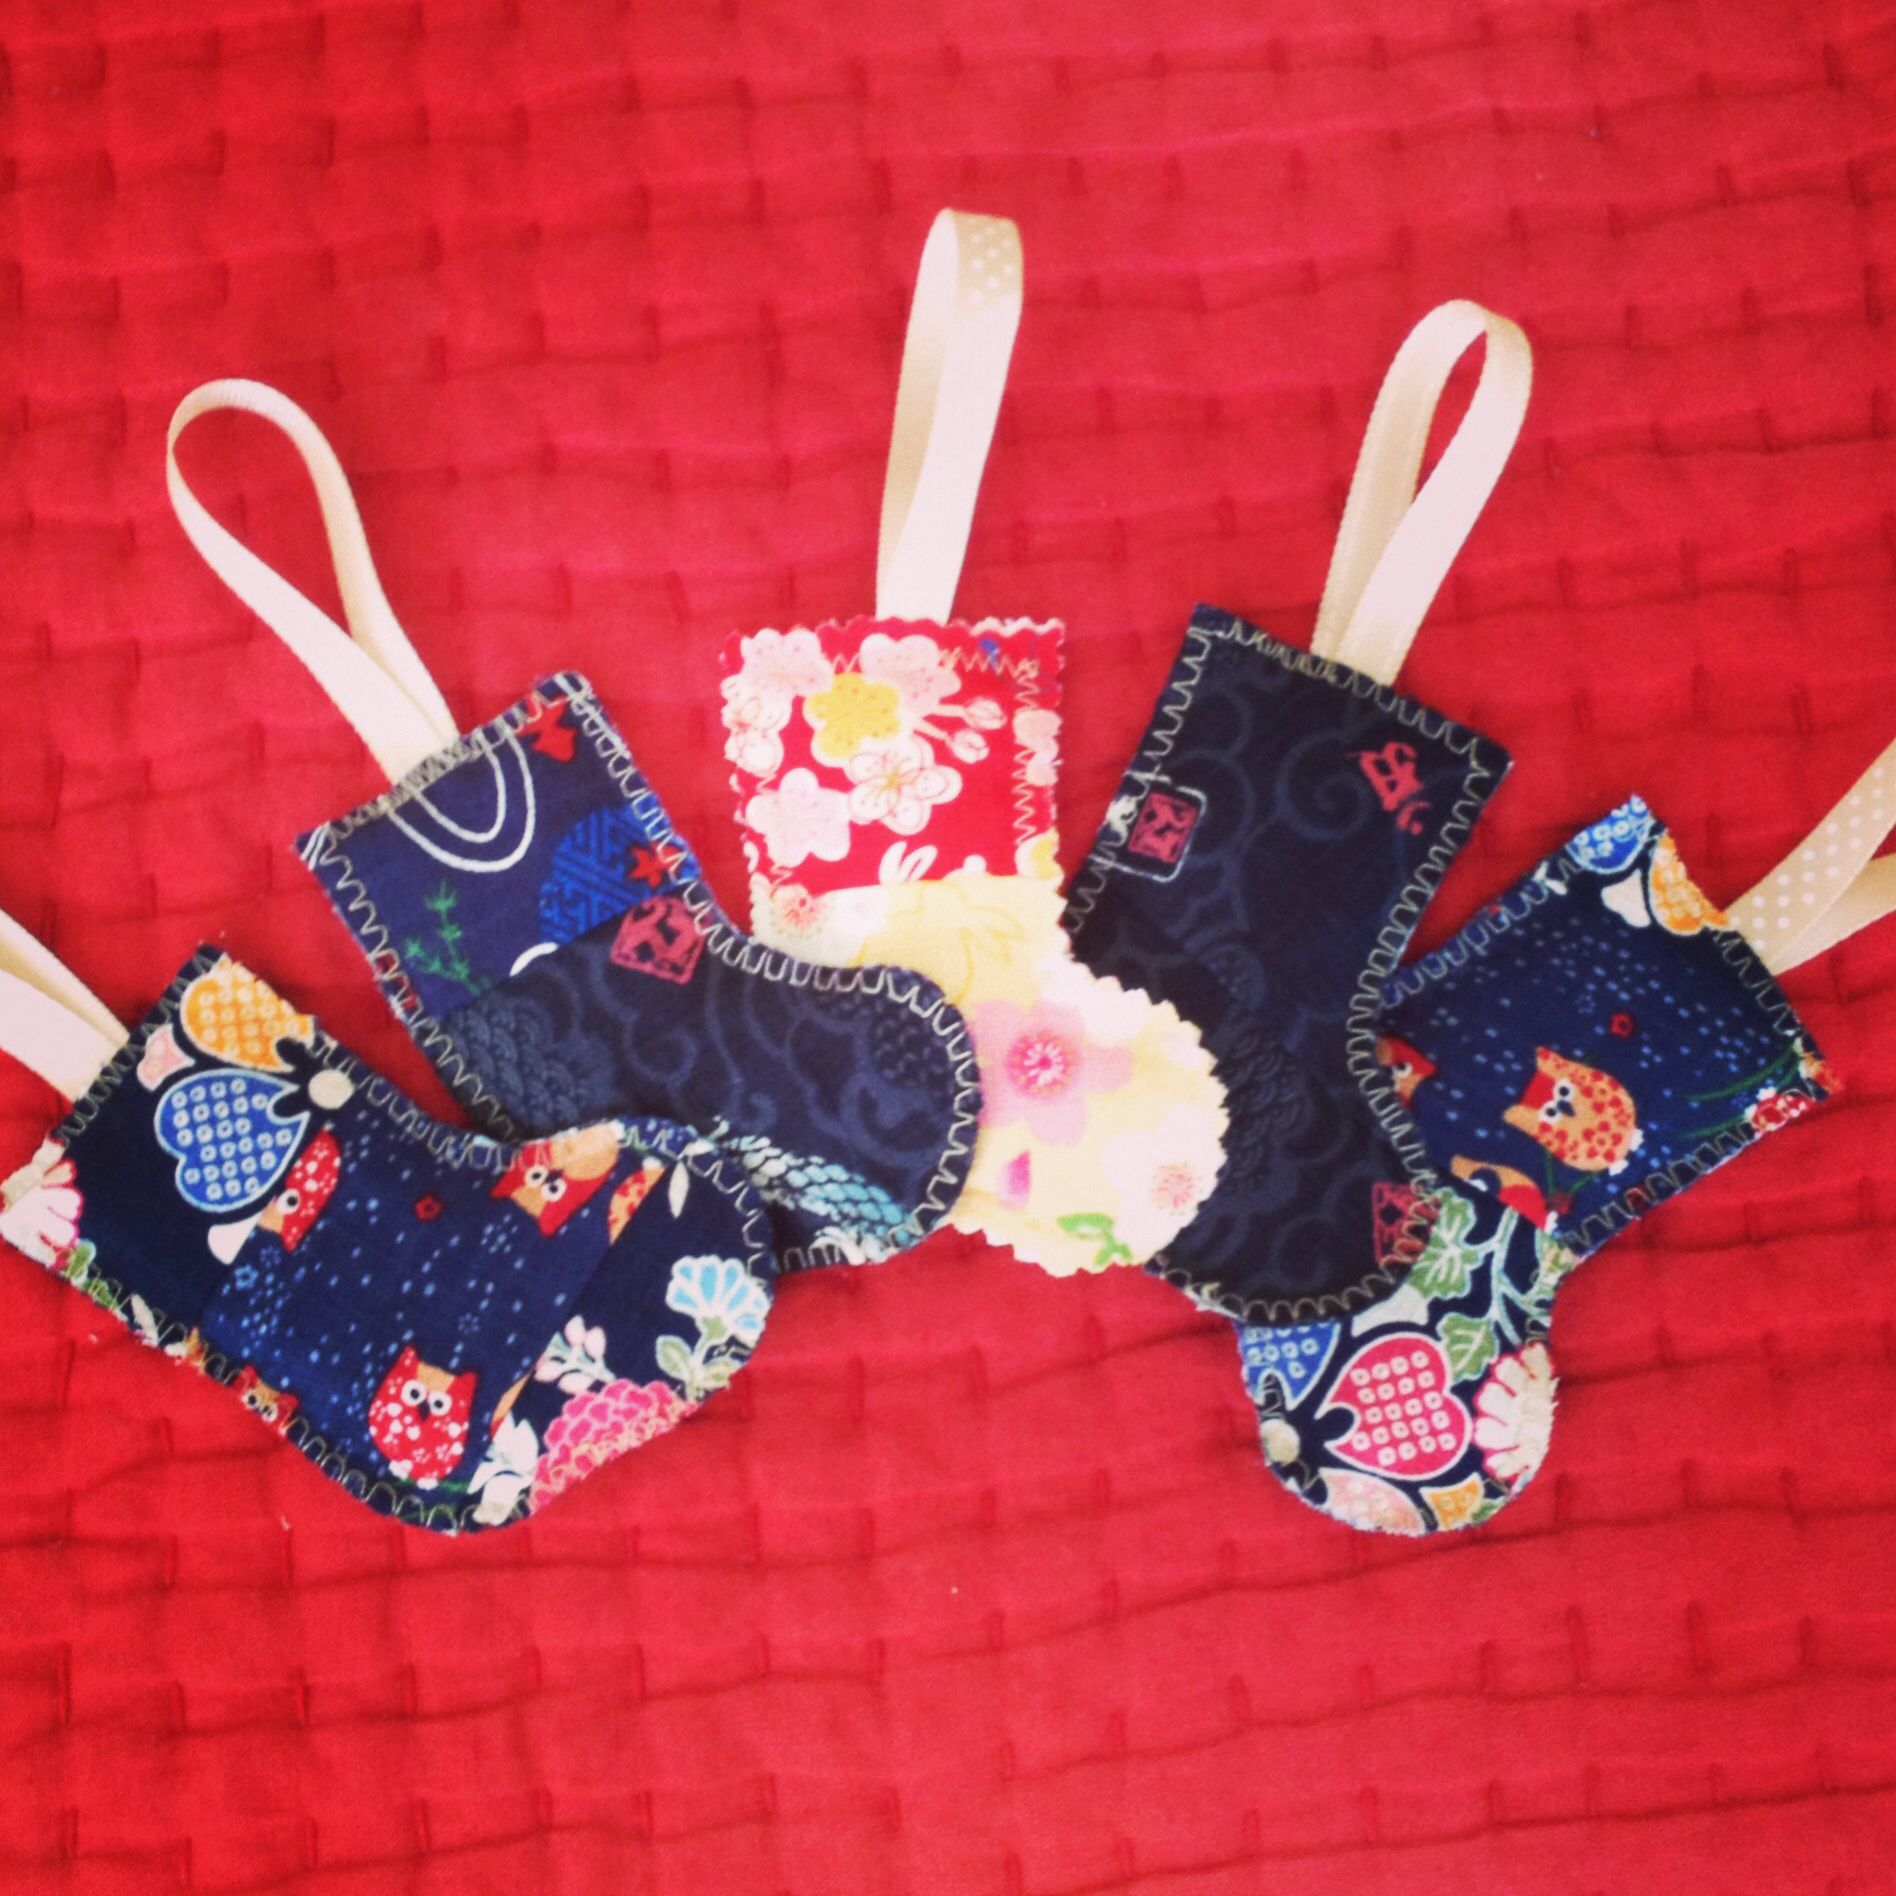 Christmas ornament made from scraps. With Japanese fabric ...